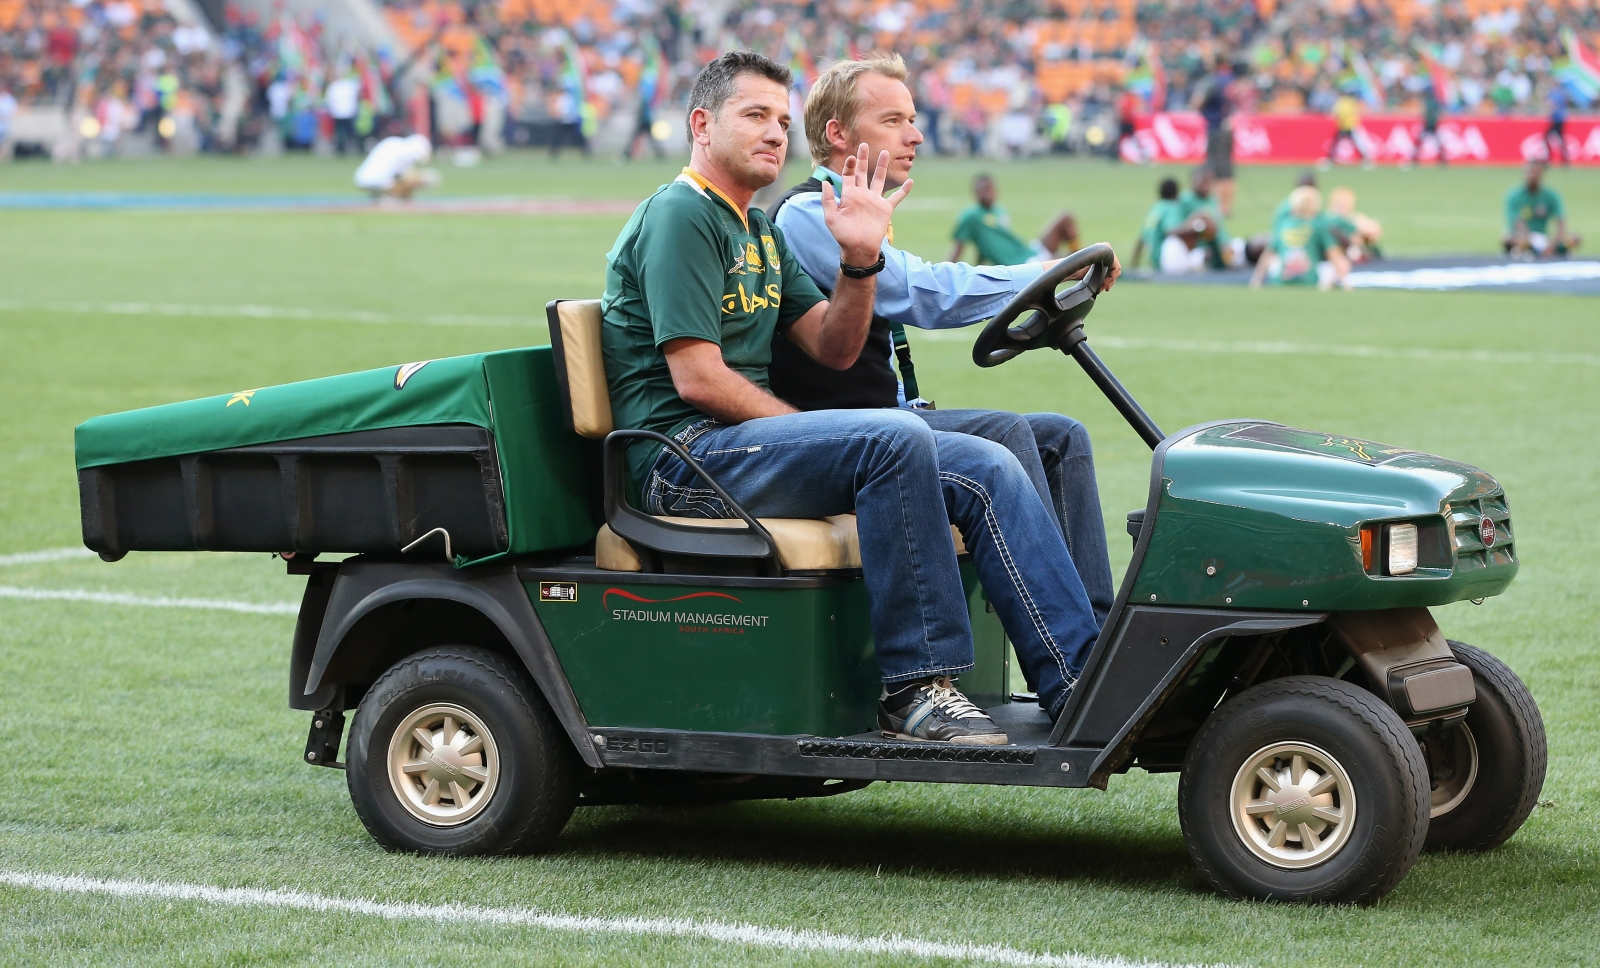 Springbok hero in hospital